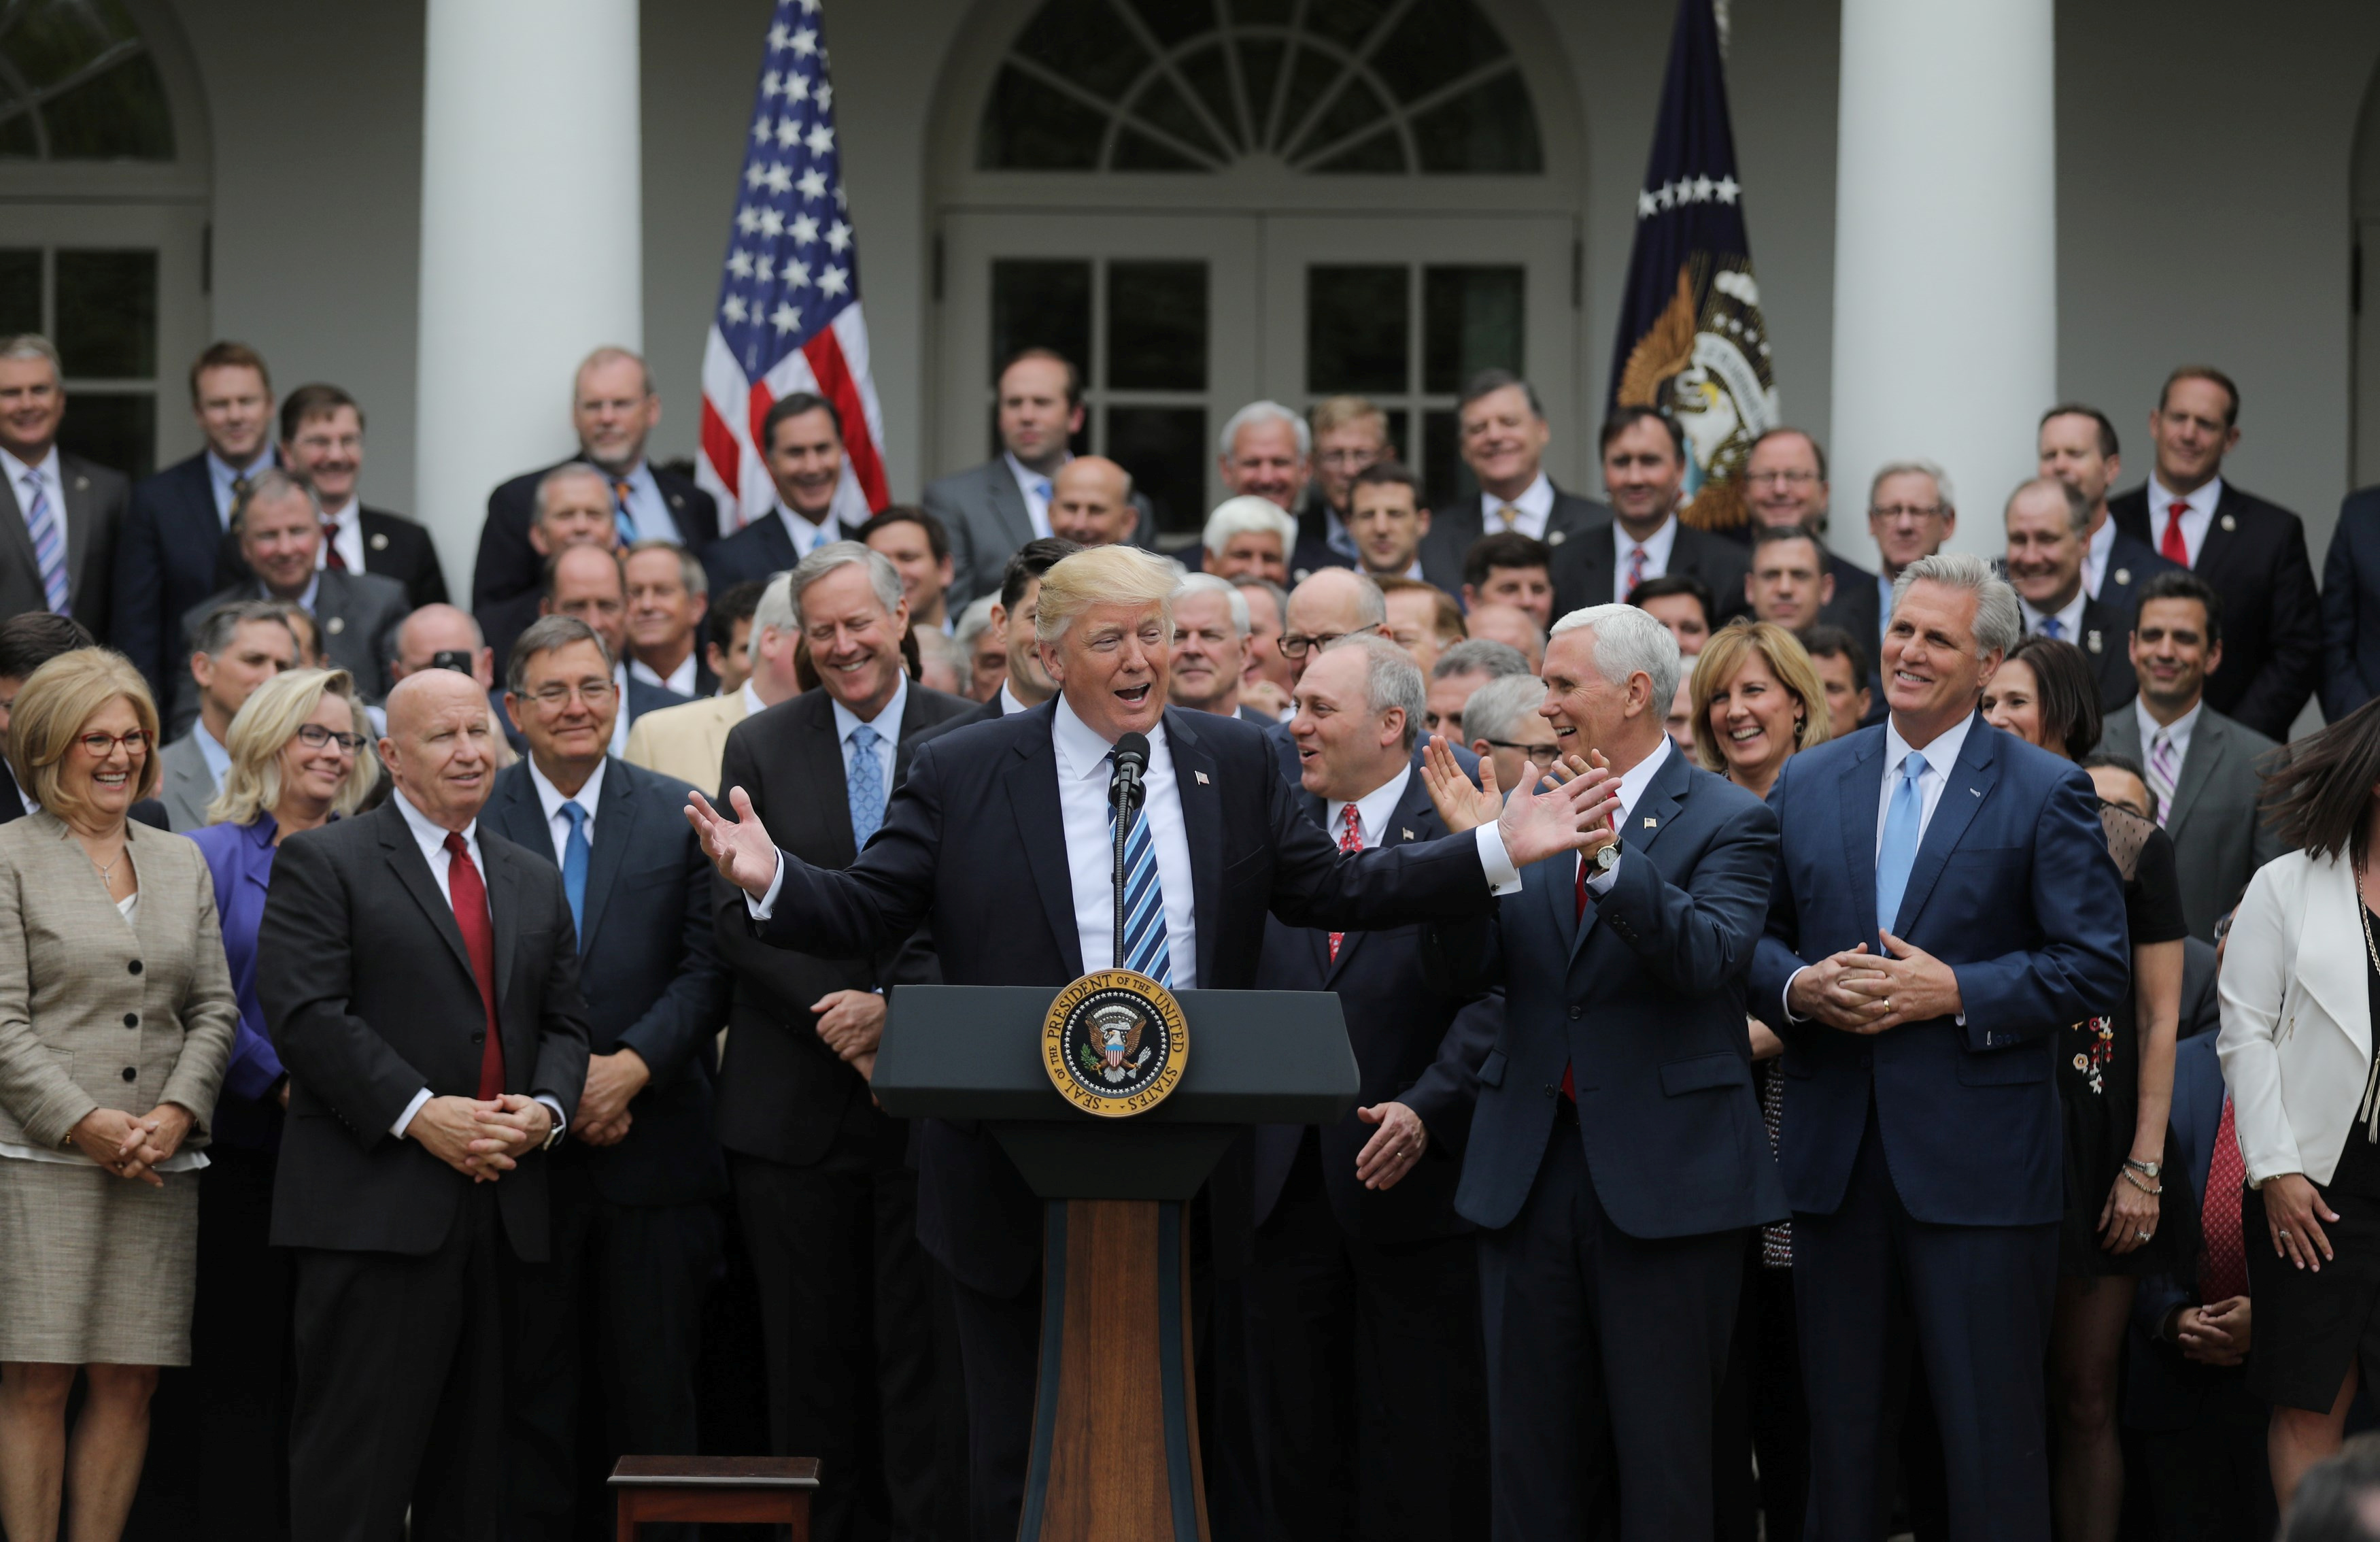 President Donald Trump gathers with Congressional Republicans in the Rose Garden of the White House after the House of Representatives approved the American Healthcare Act, to repeal major parts of Obamacare and replace it with the Republican healthcare plan, in Washington, May 4, 2017.